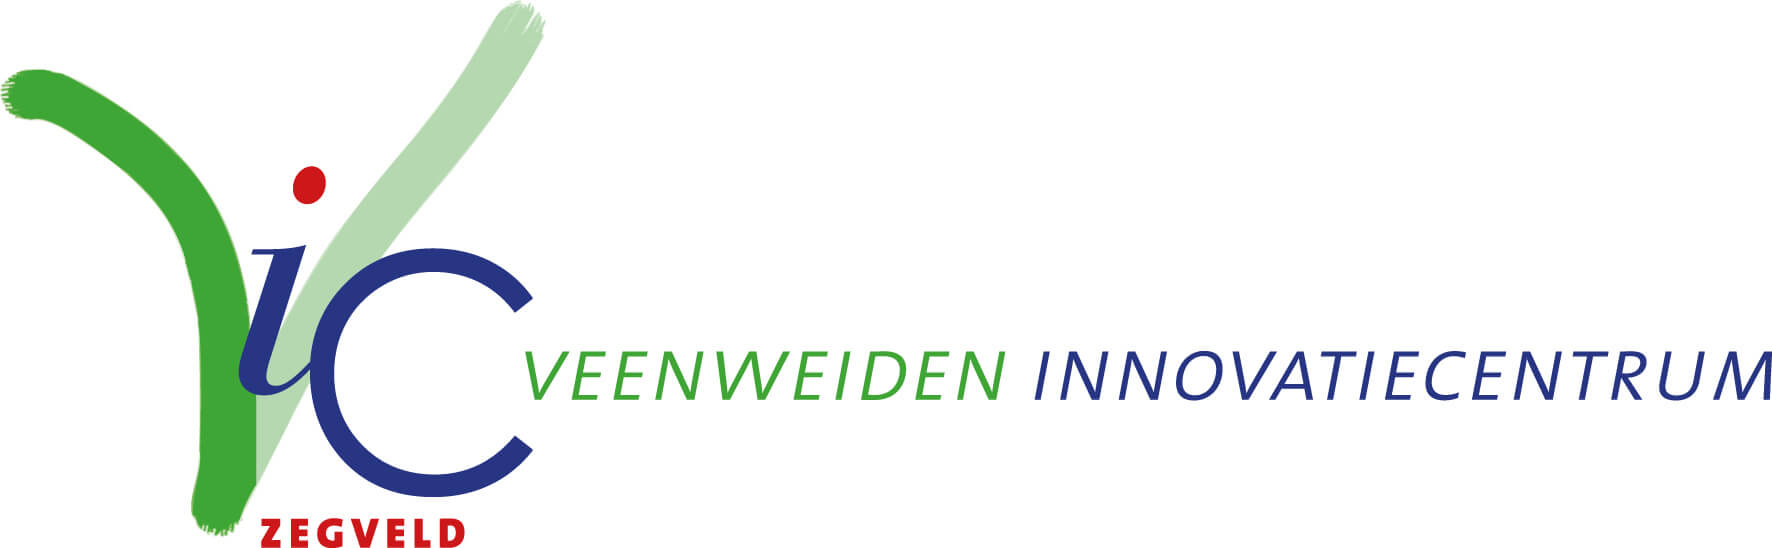 Veenweiden innovatiecentrum